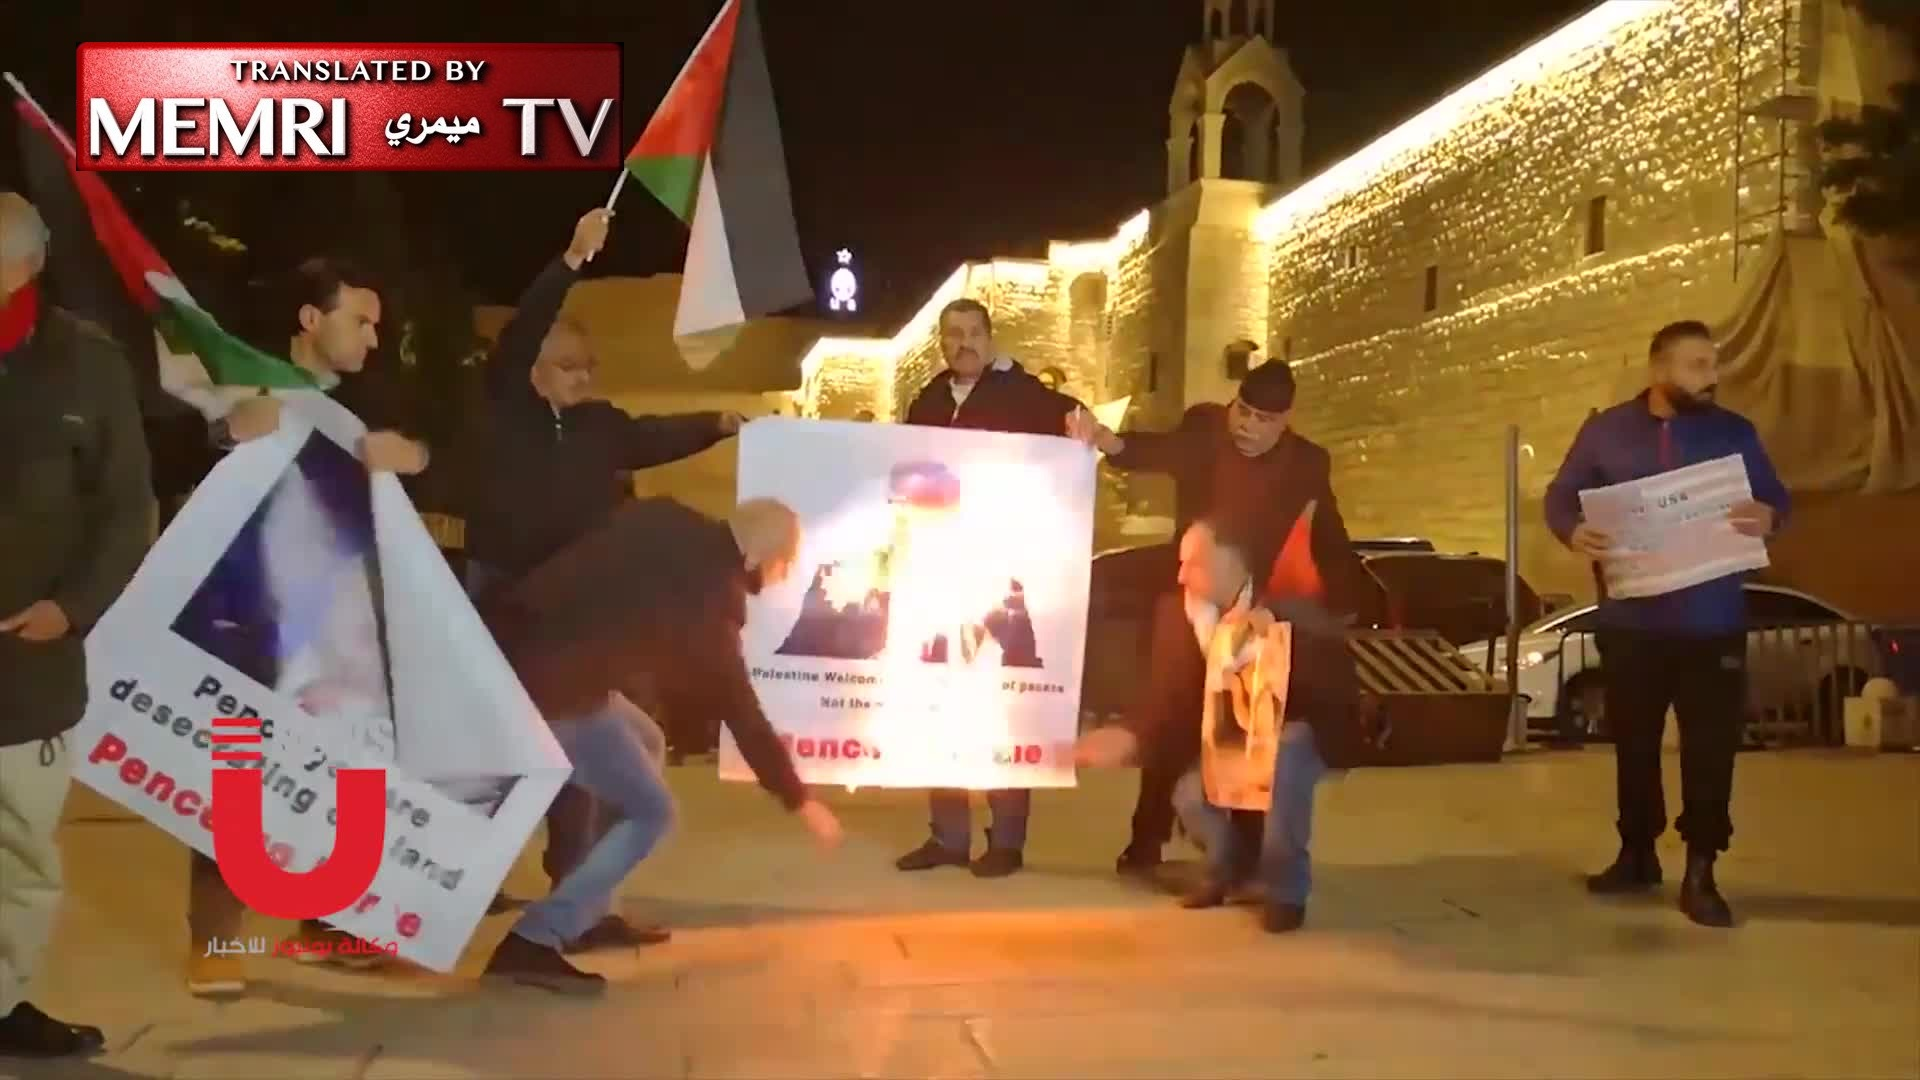 Palestinian Activists in Bethlehem Burn Posters of VP Pence to Protest His Visit